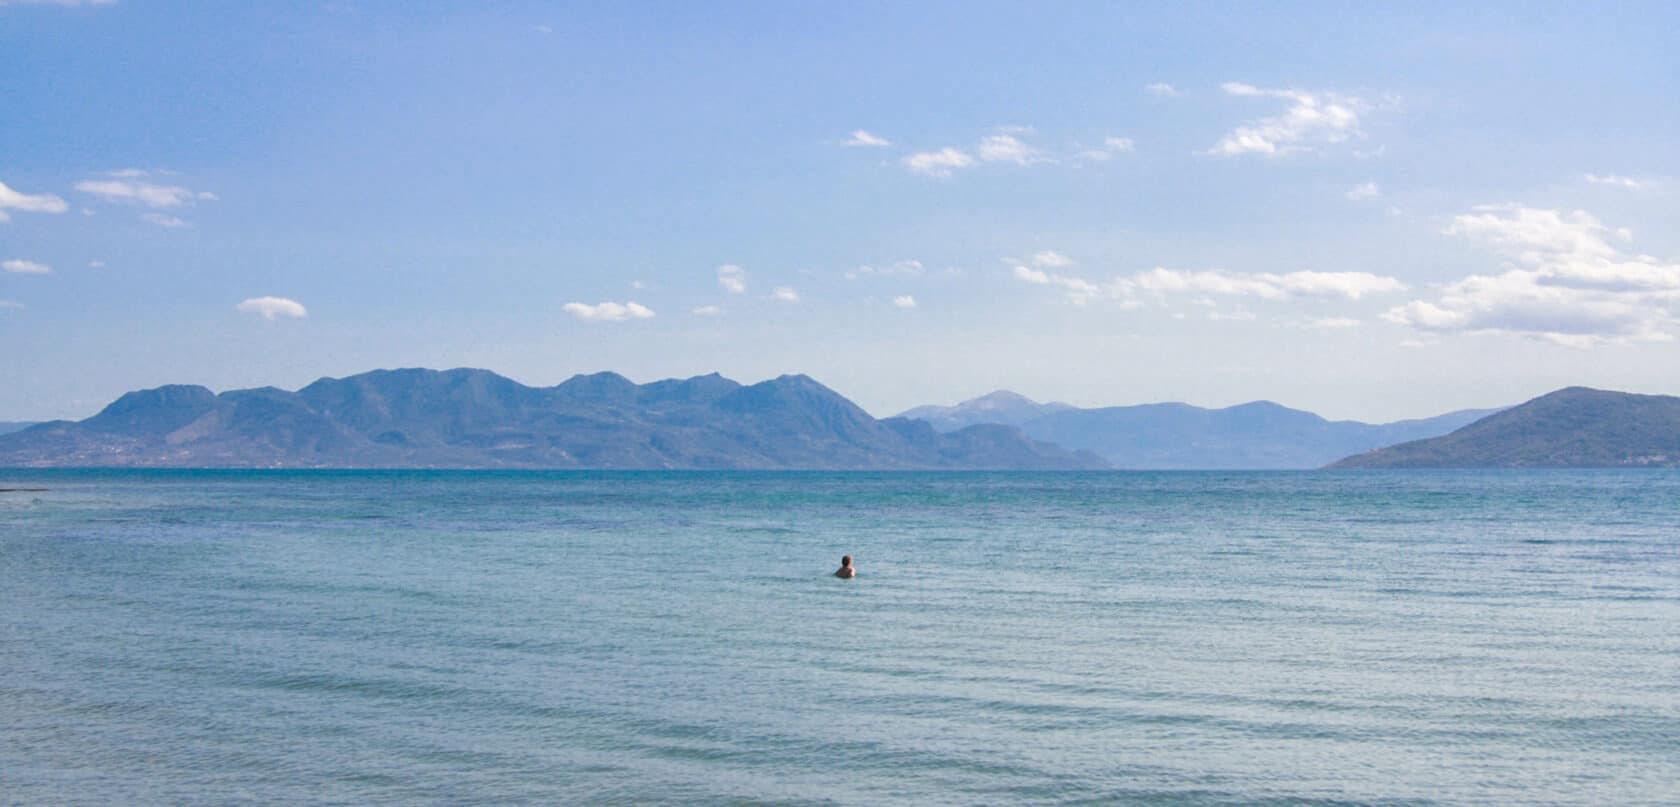 A view of the ocean with mountains in the background.